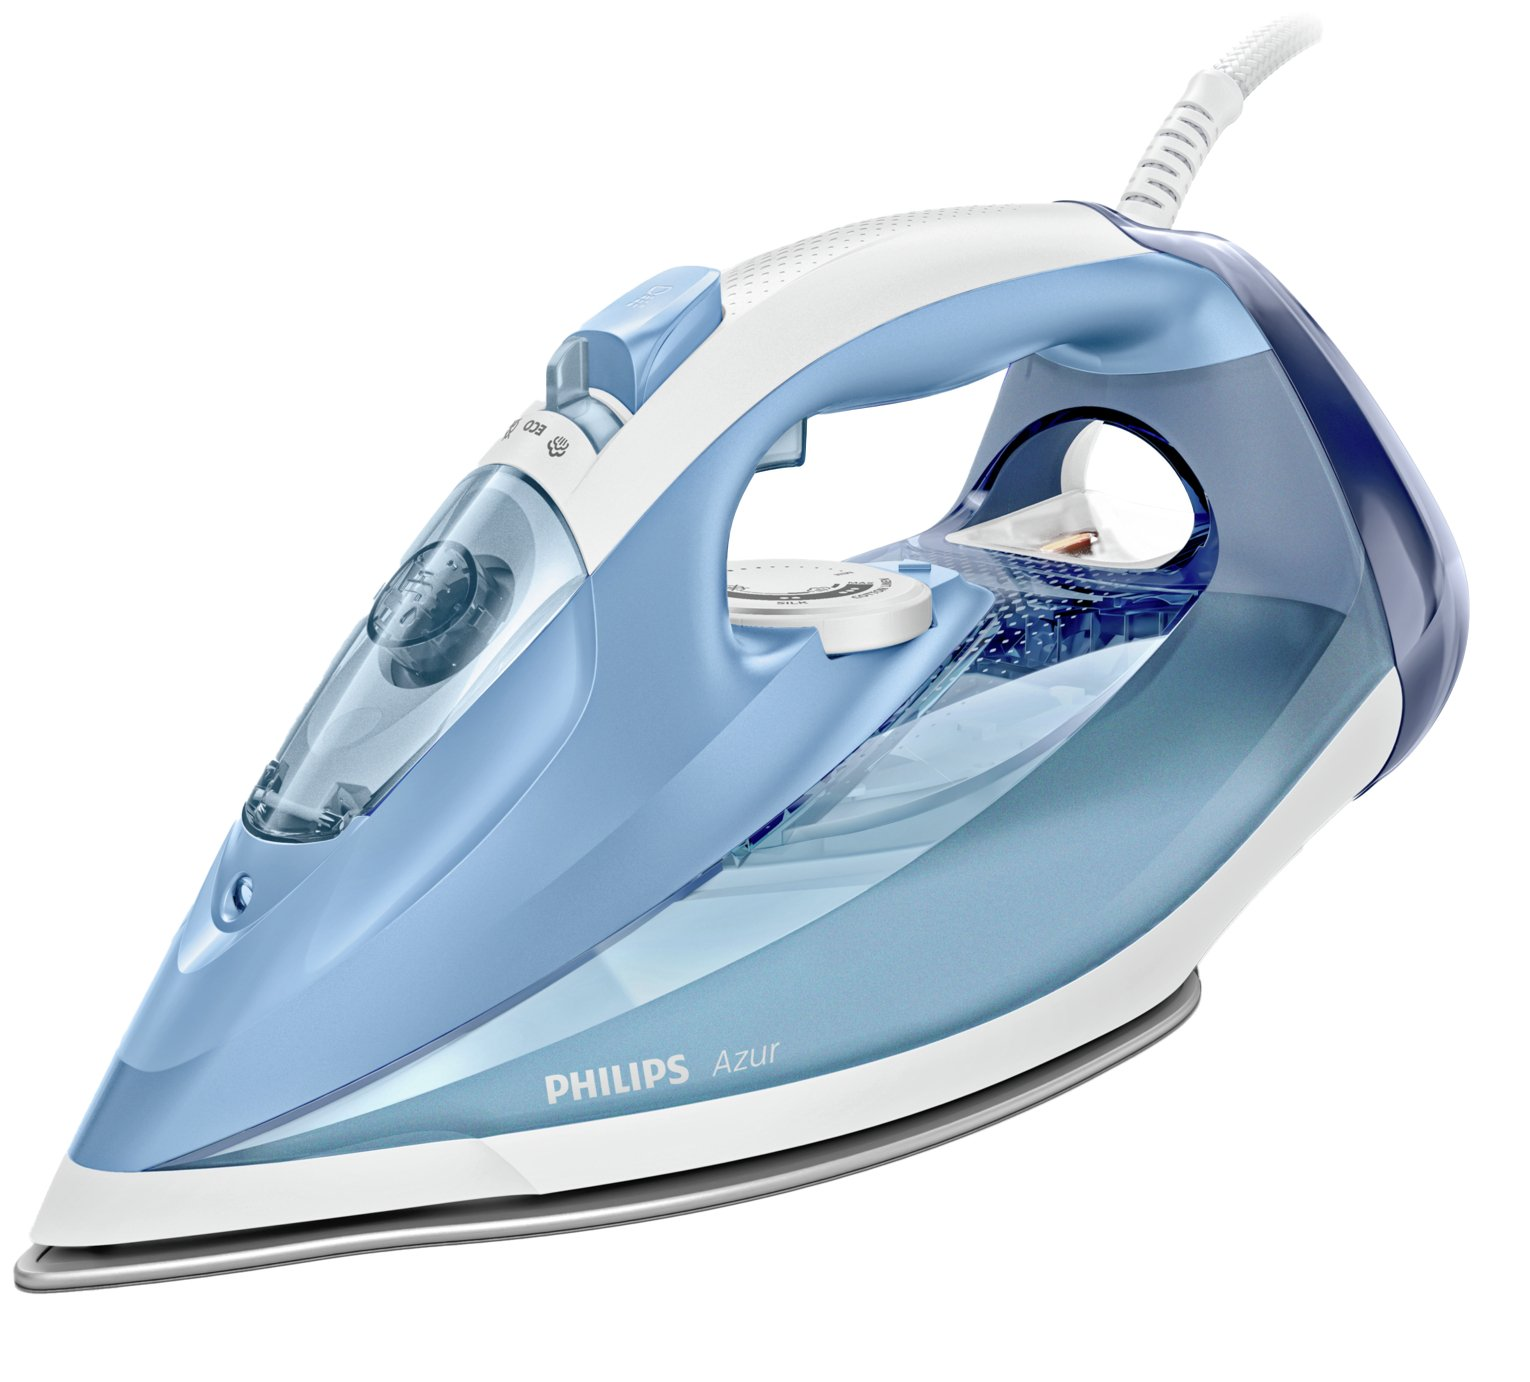 Philips Azur GC4532/26 Steam Iron from Philips